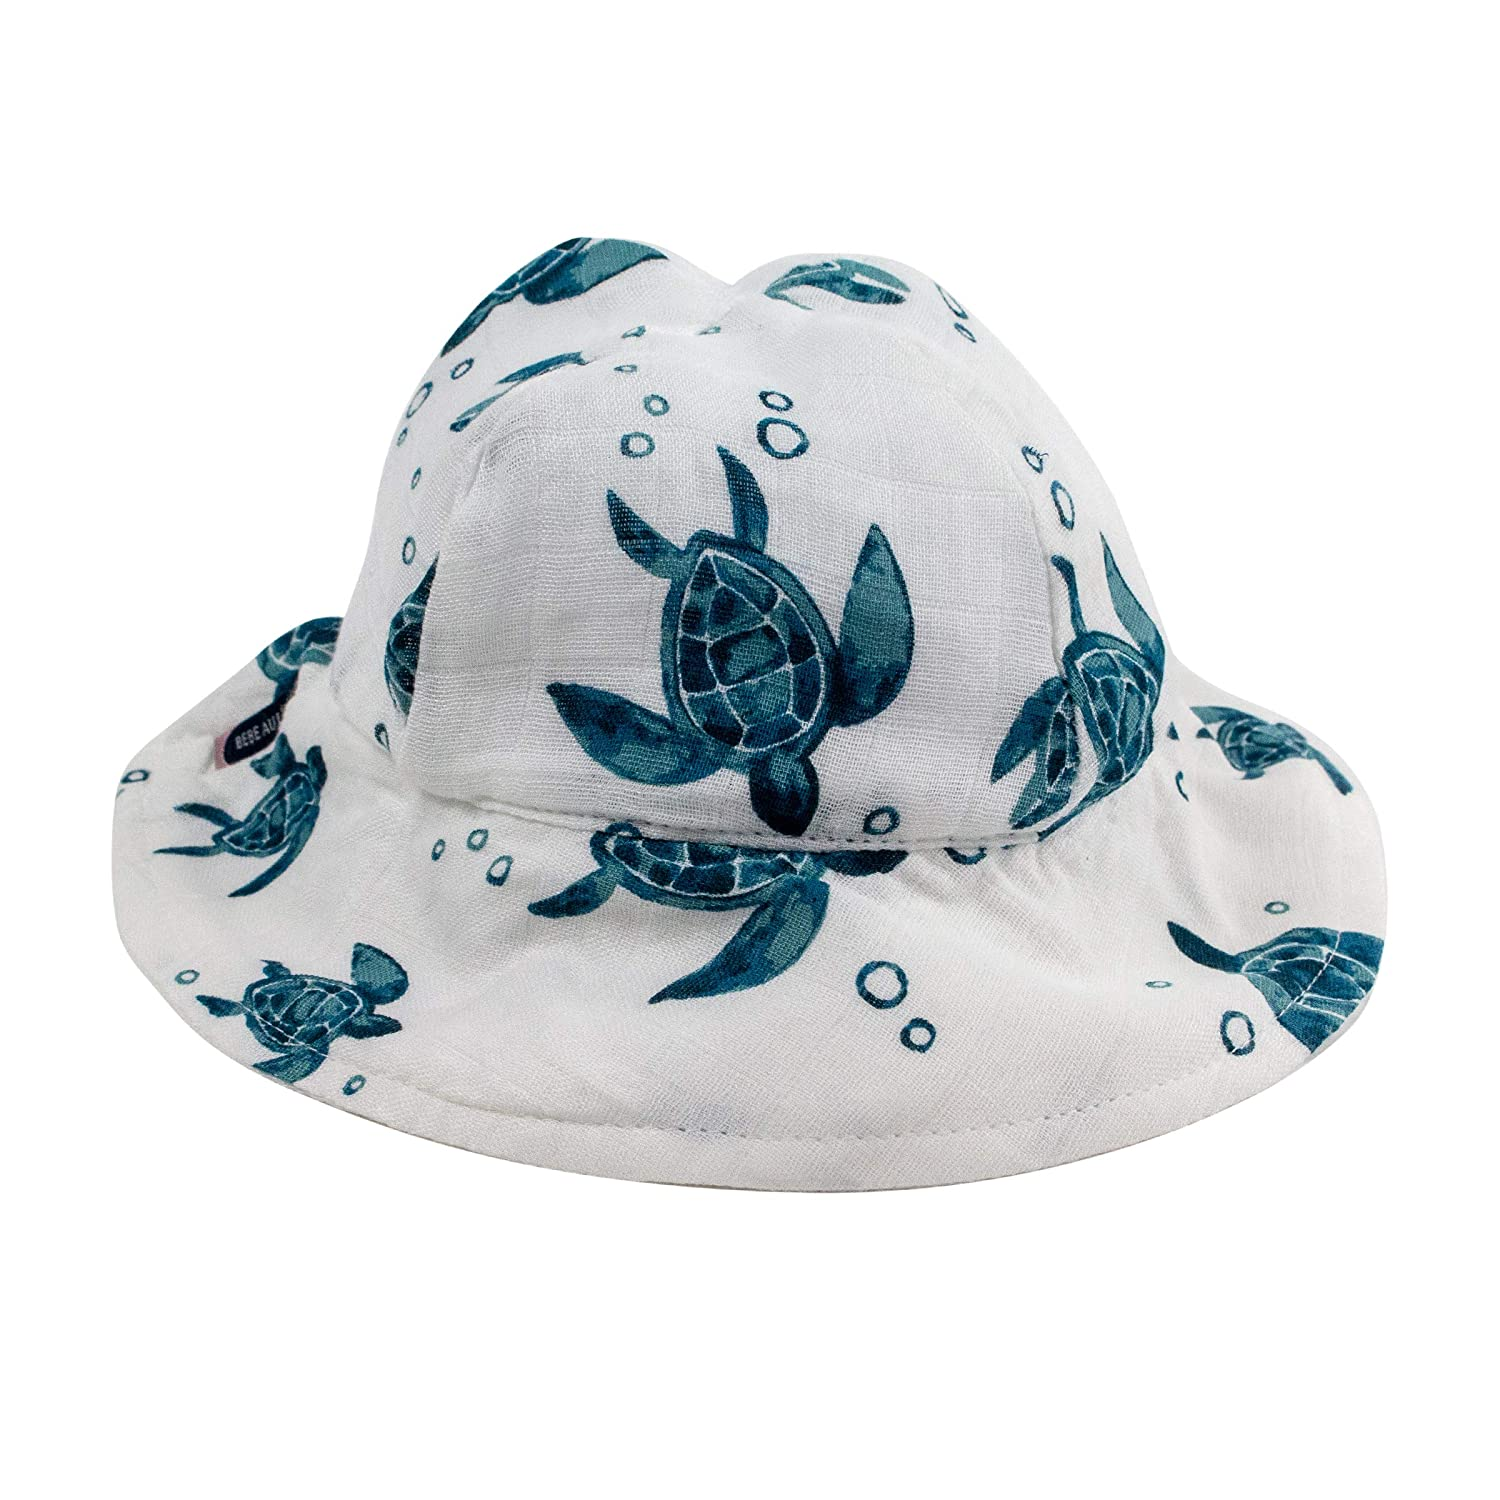 Bebe au Lait Oh-So-Soft Muslin Sun Hat, Sea Turtles, Blue and White, 0-12 Month